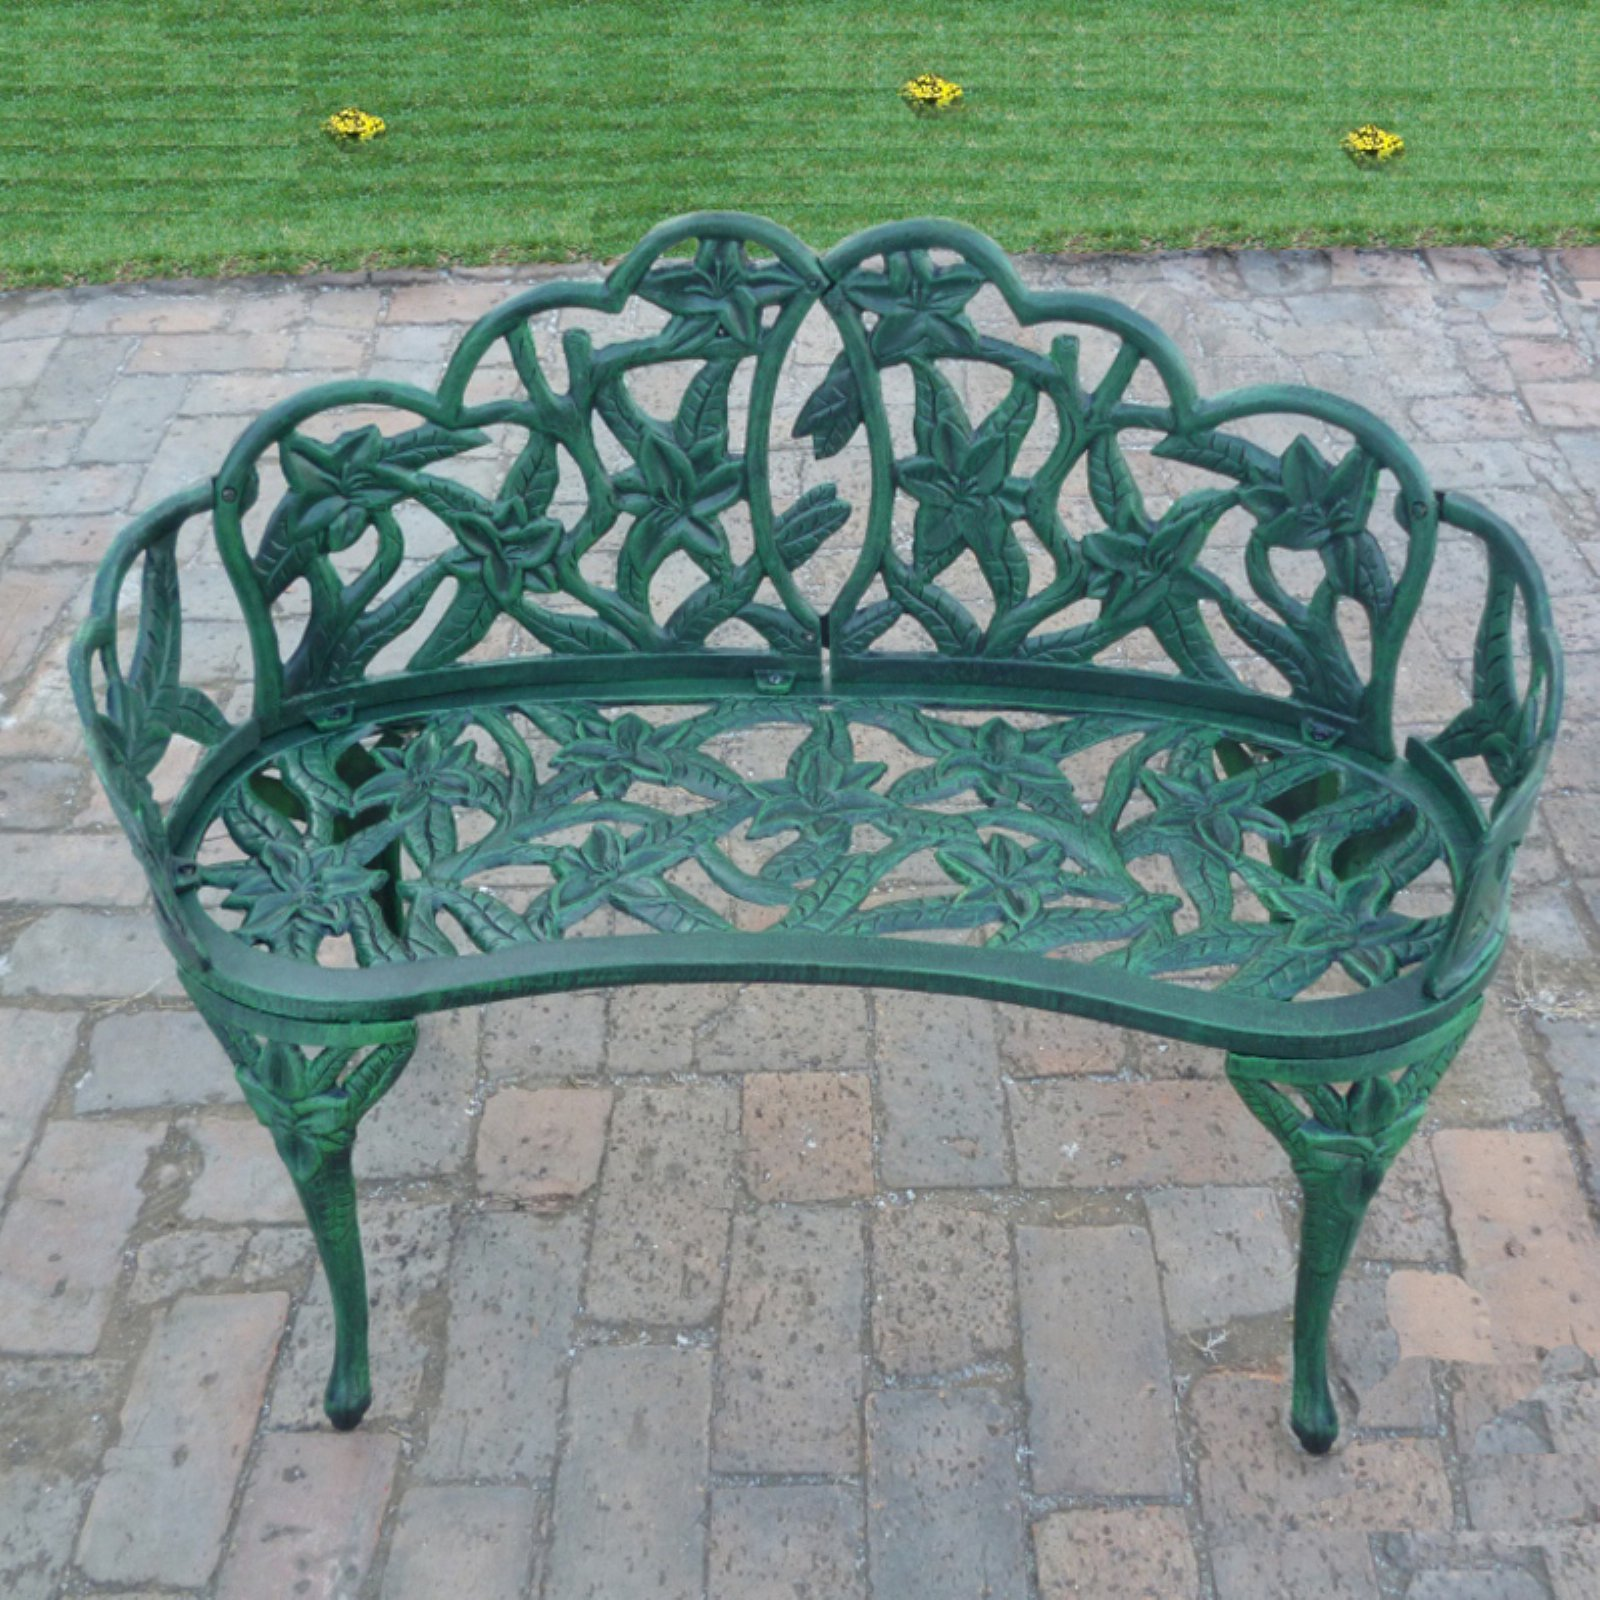 Oakland Living Lily Garden 37 in. Decorative Curved Metal Bench - Verdi Green